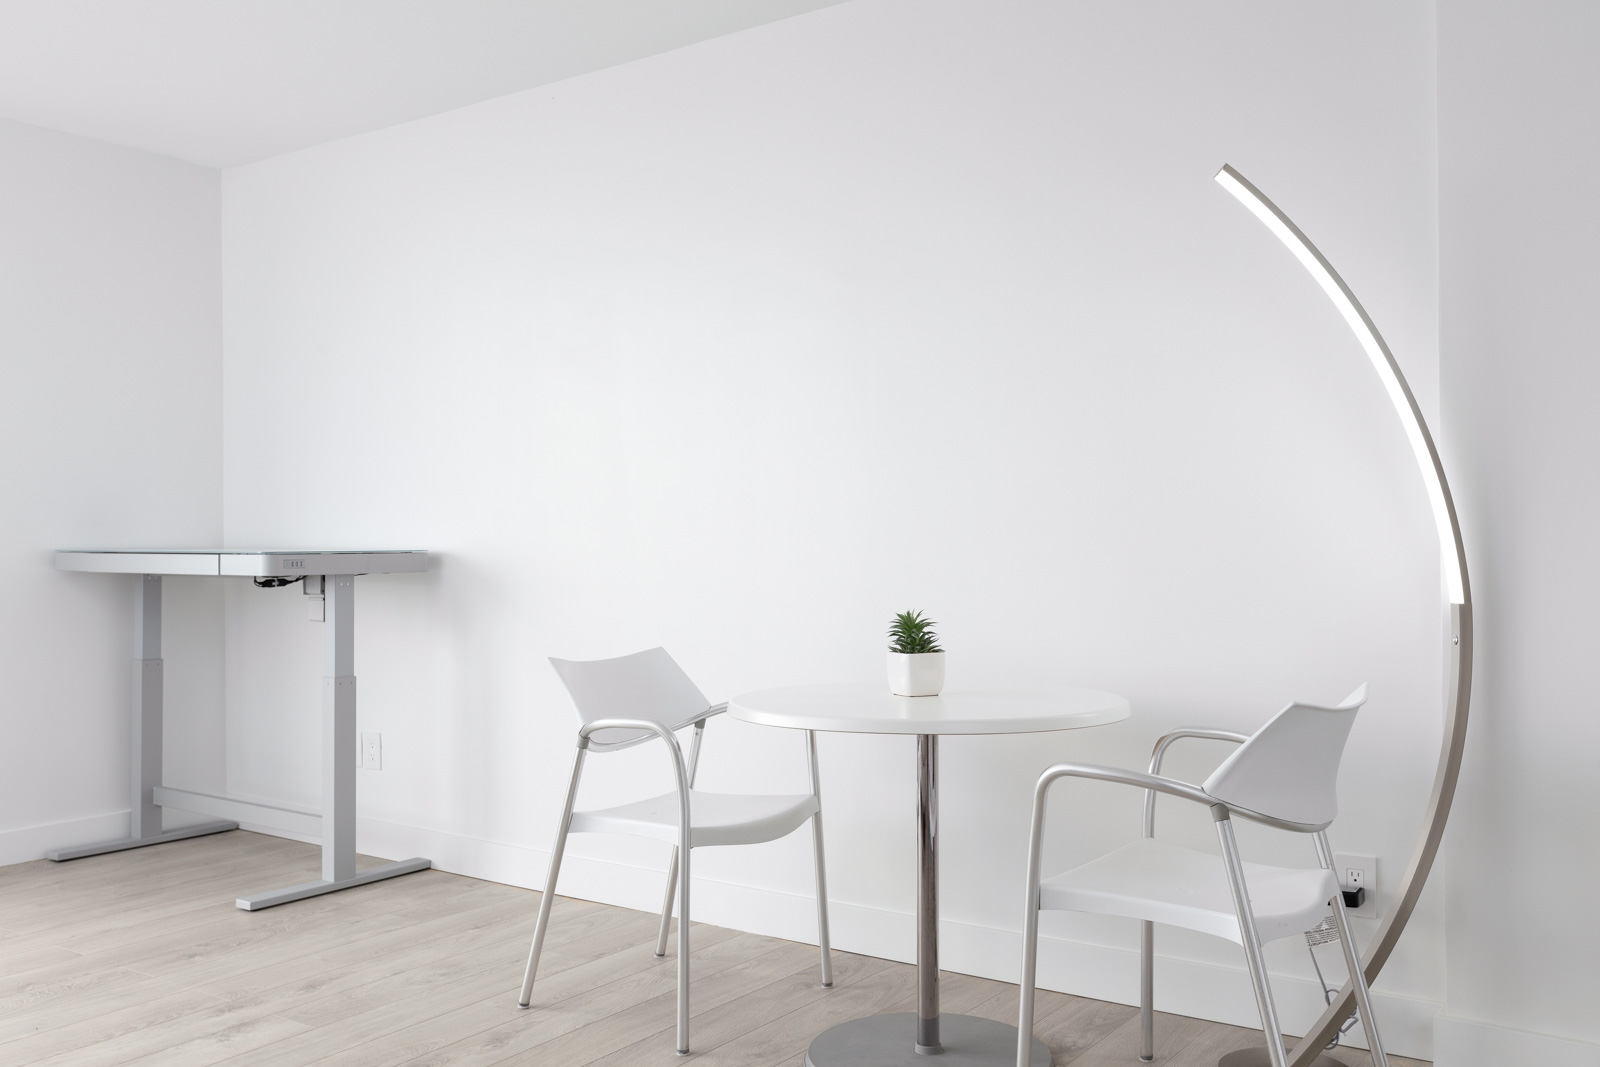 chairs and table against white wall of rental apartment in kitsilano neighbourhood of vancouver